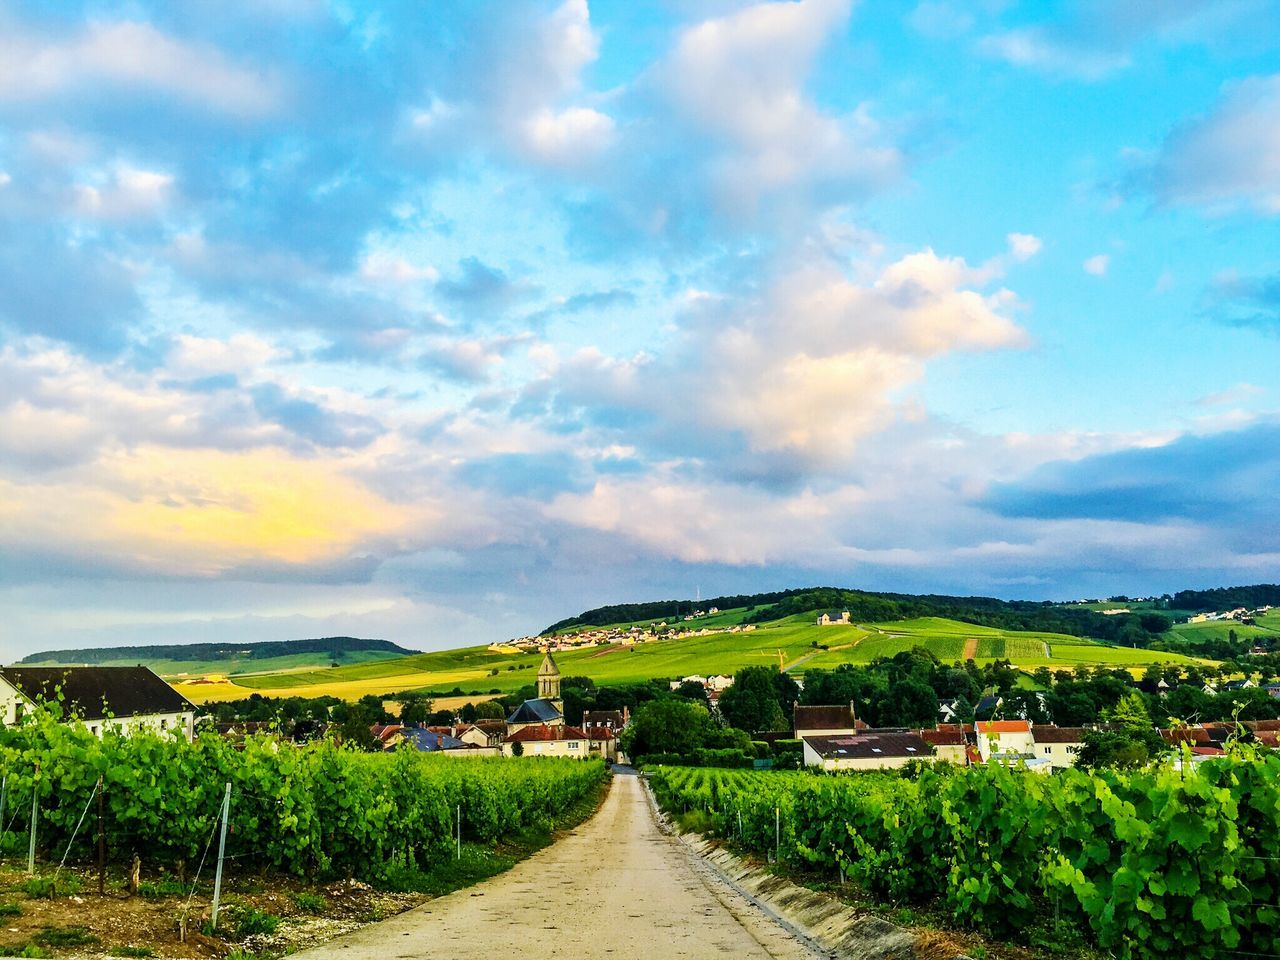 Champagne Region No People Champagne Nopeople Blue Sky And Clouds Champagne Grapes Green Grapes Wine GrapesWine GrapesWine Grapes France Village View Wine Nature_collection EyeEm Nature Lover Nature Photography Vivelafrance Field Feldweg Showcase July